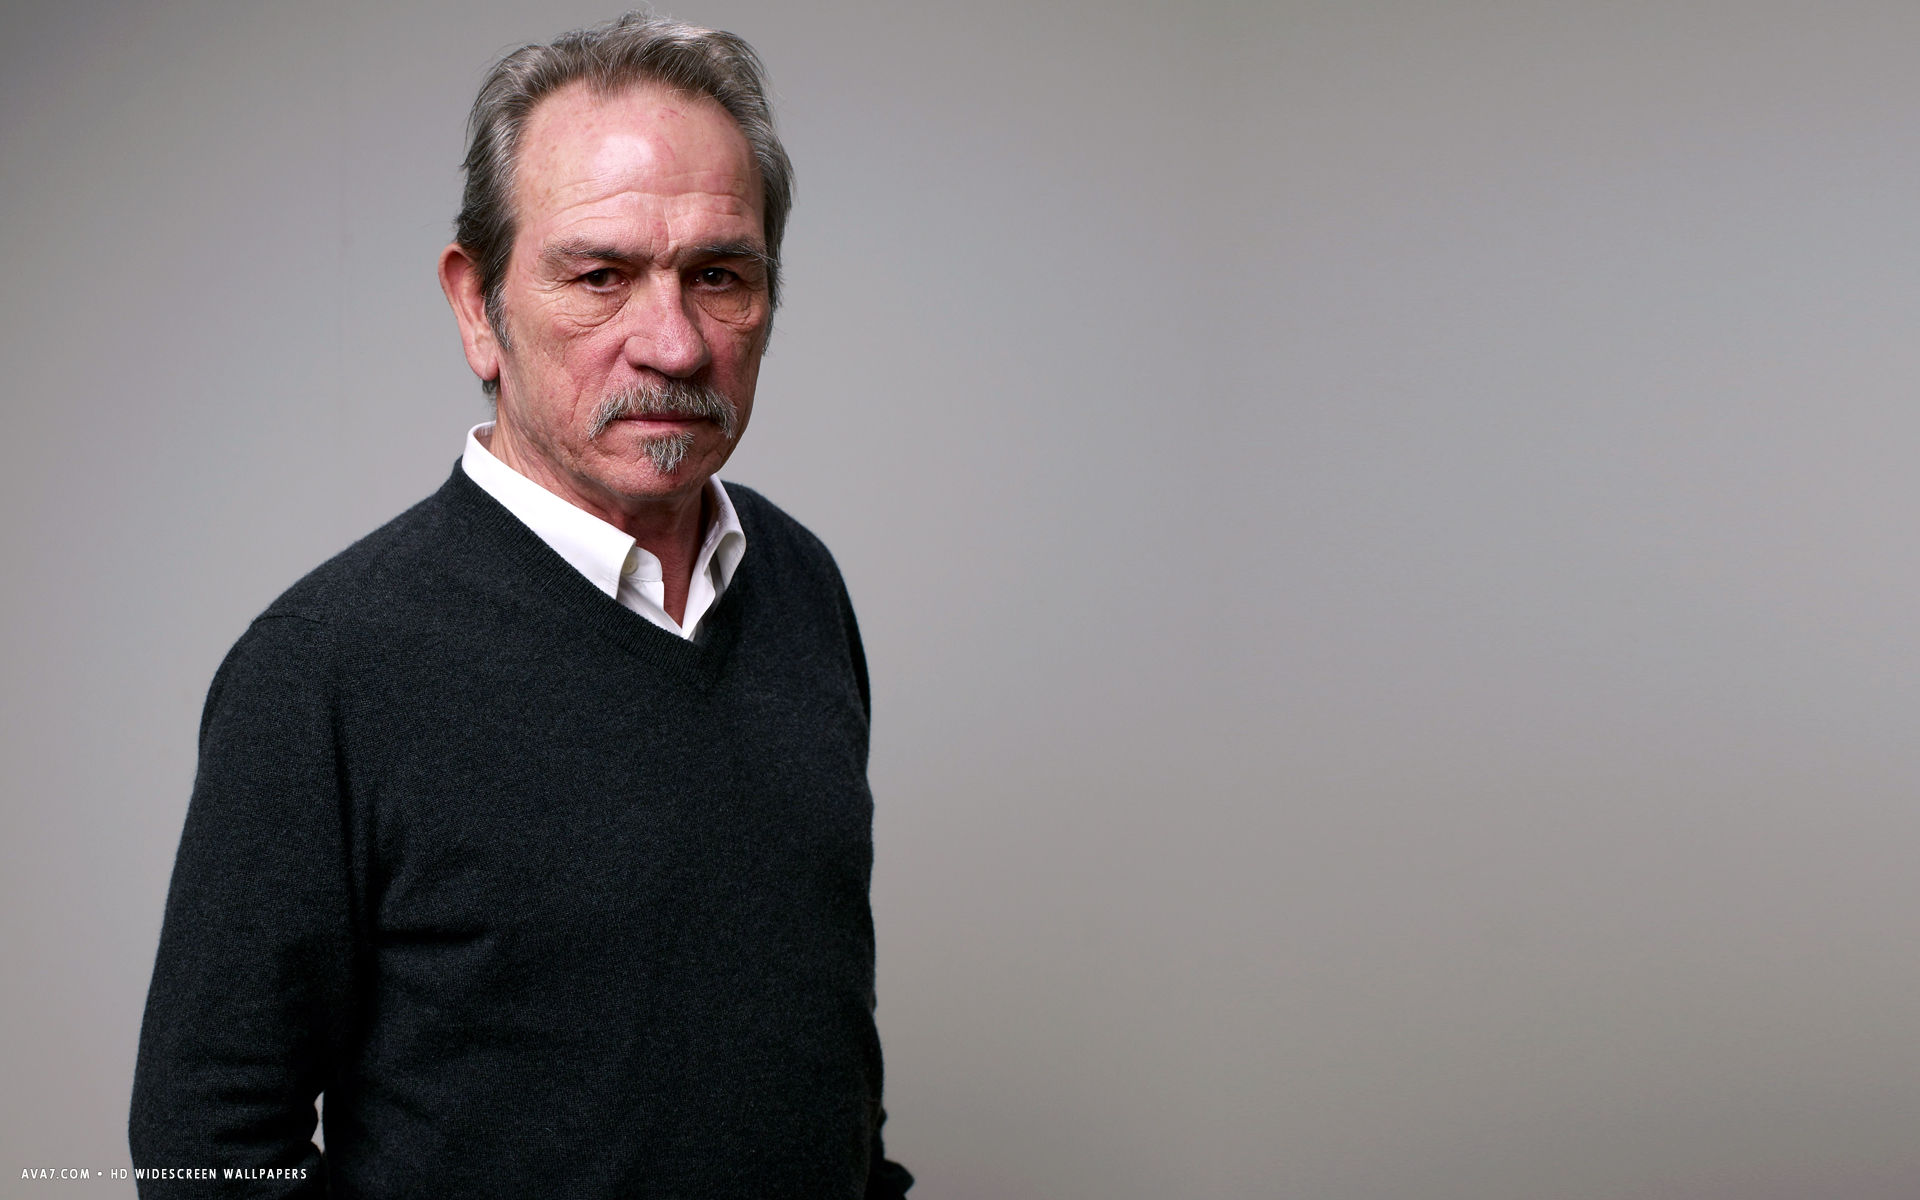 tommy lee jones actor hd widescreen wallpaper